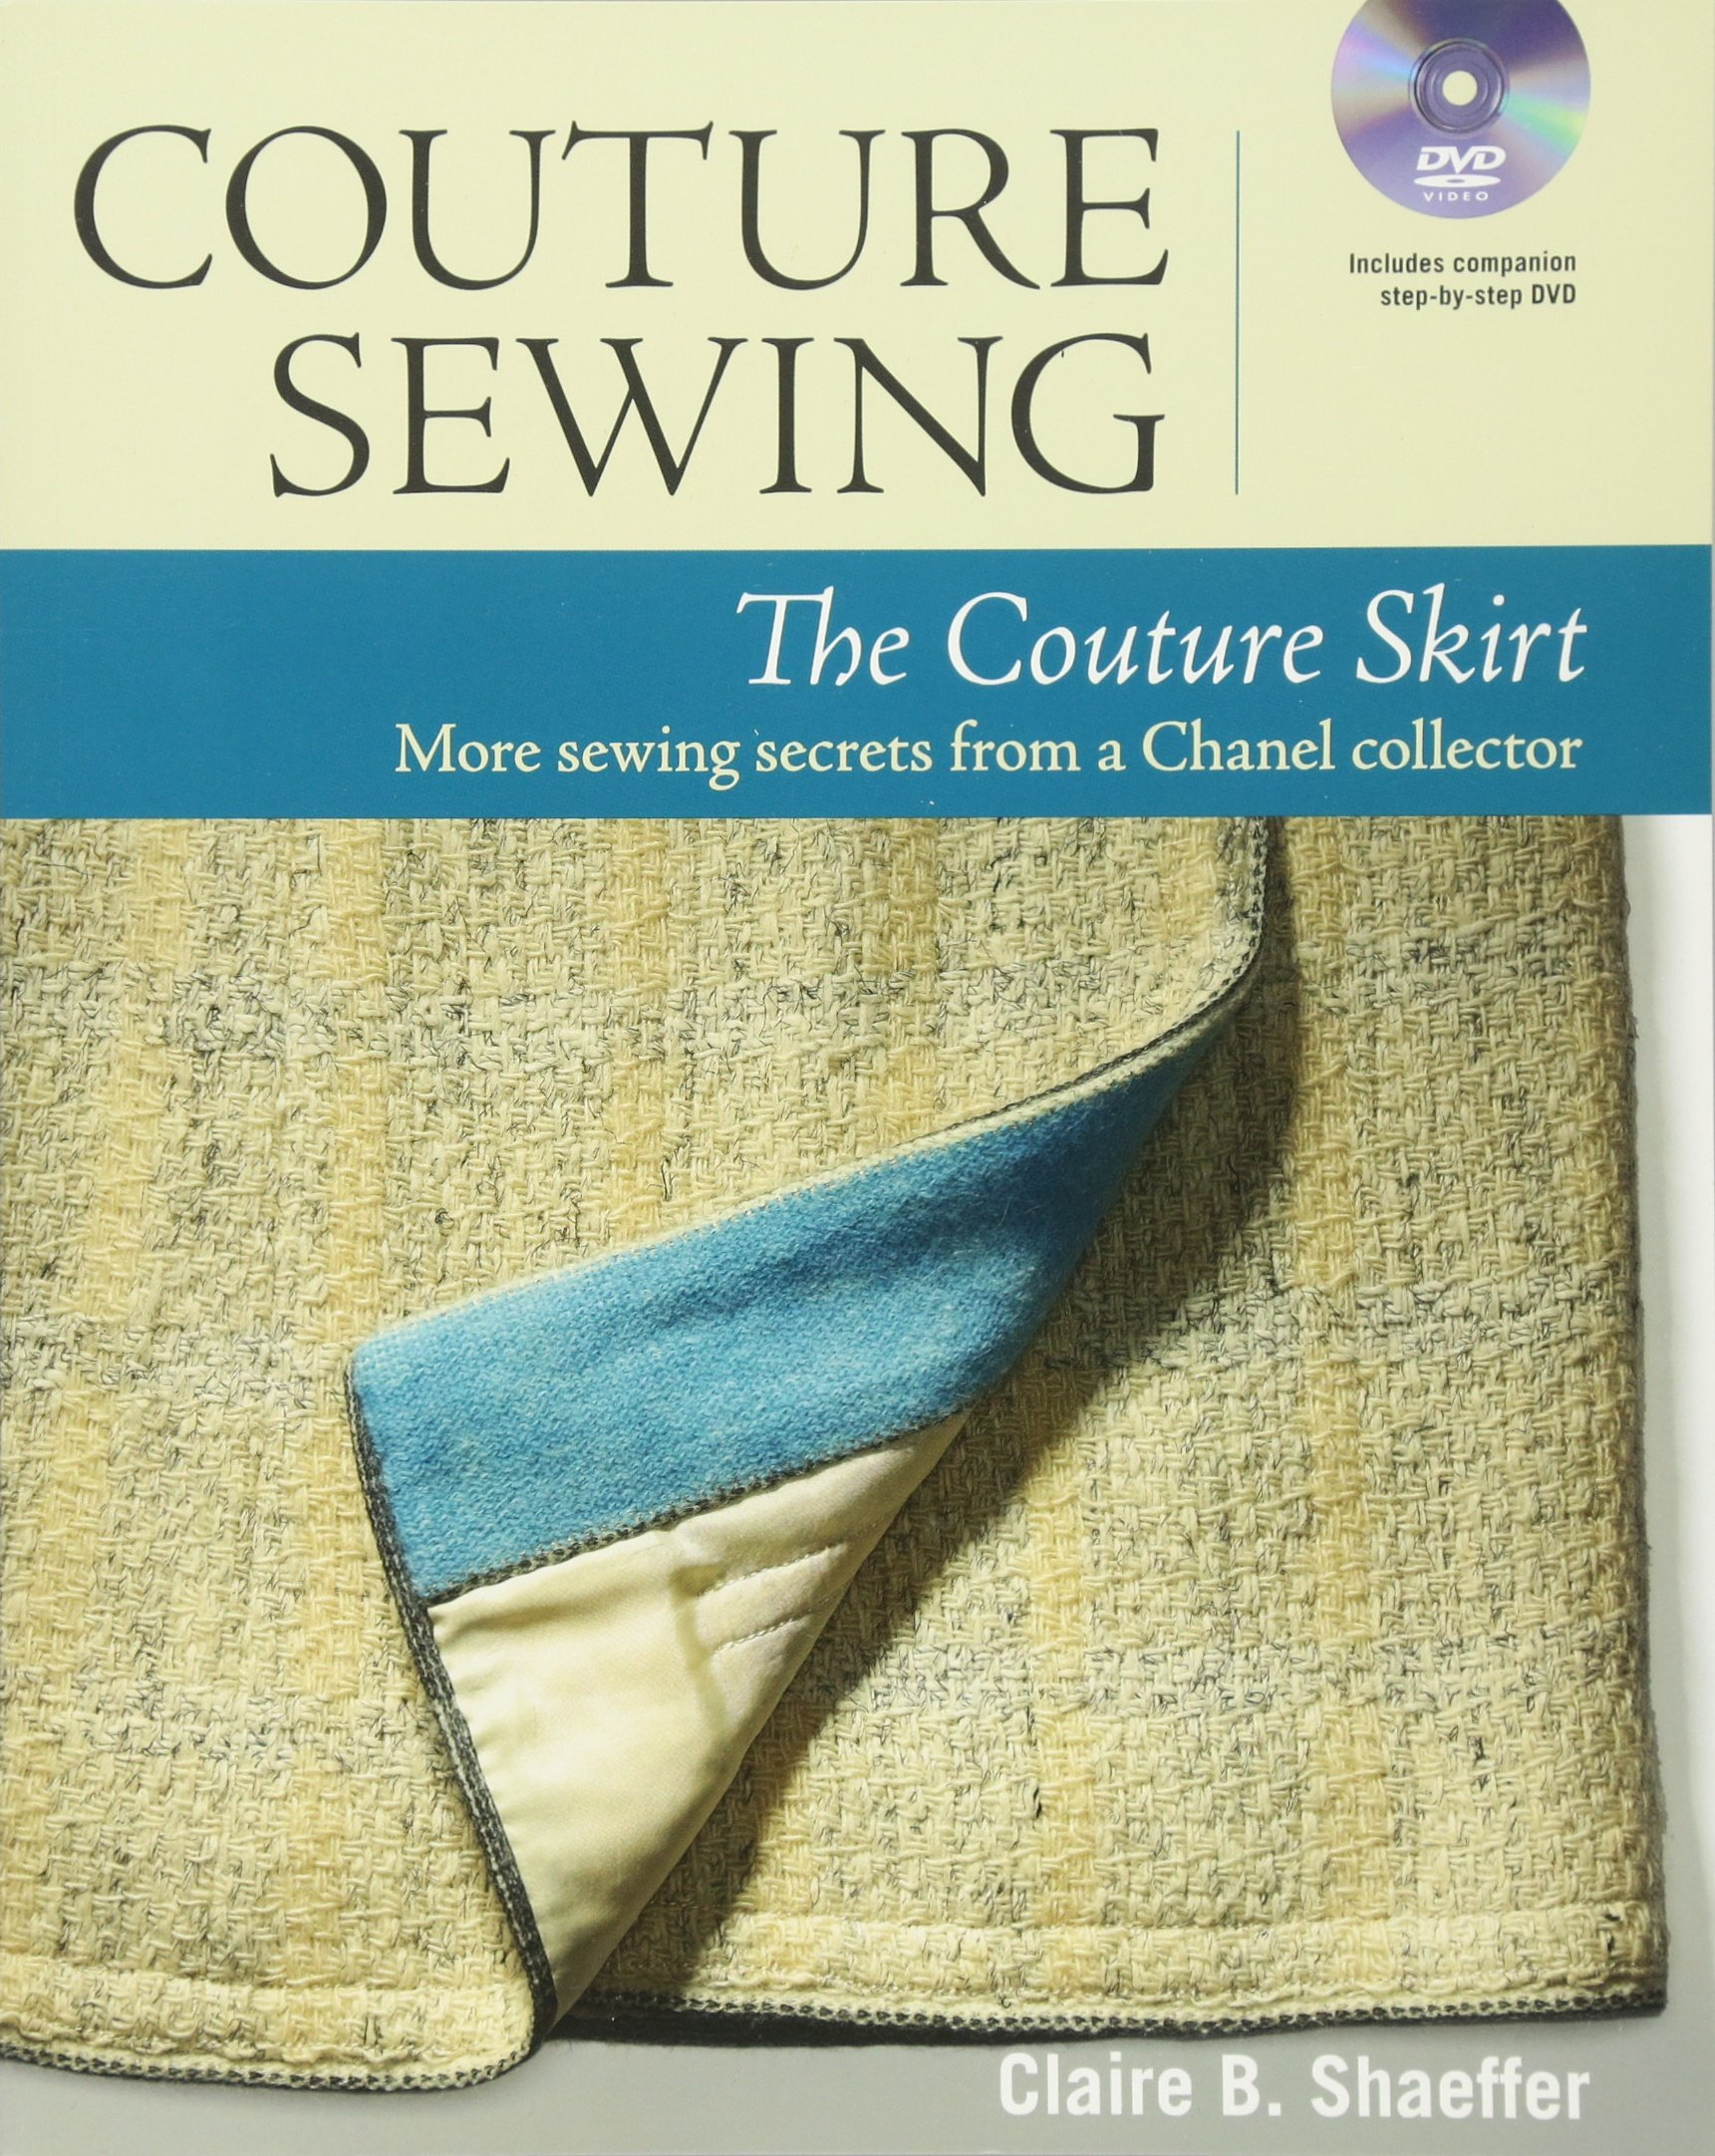 Couture Sewing: The Couture Skirt: more sewing secrets from a Chanel collector pdf